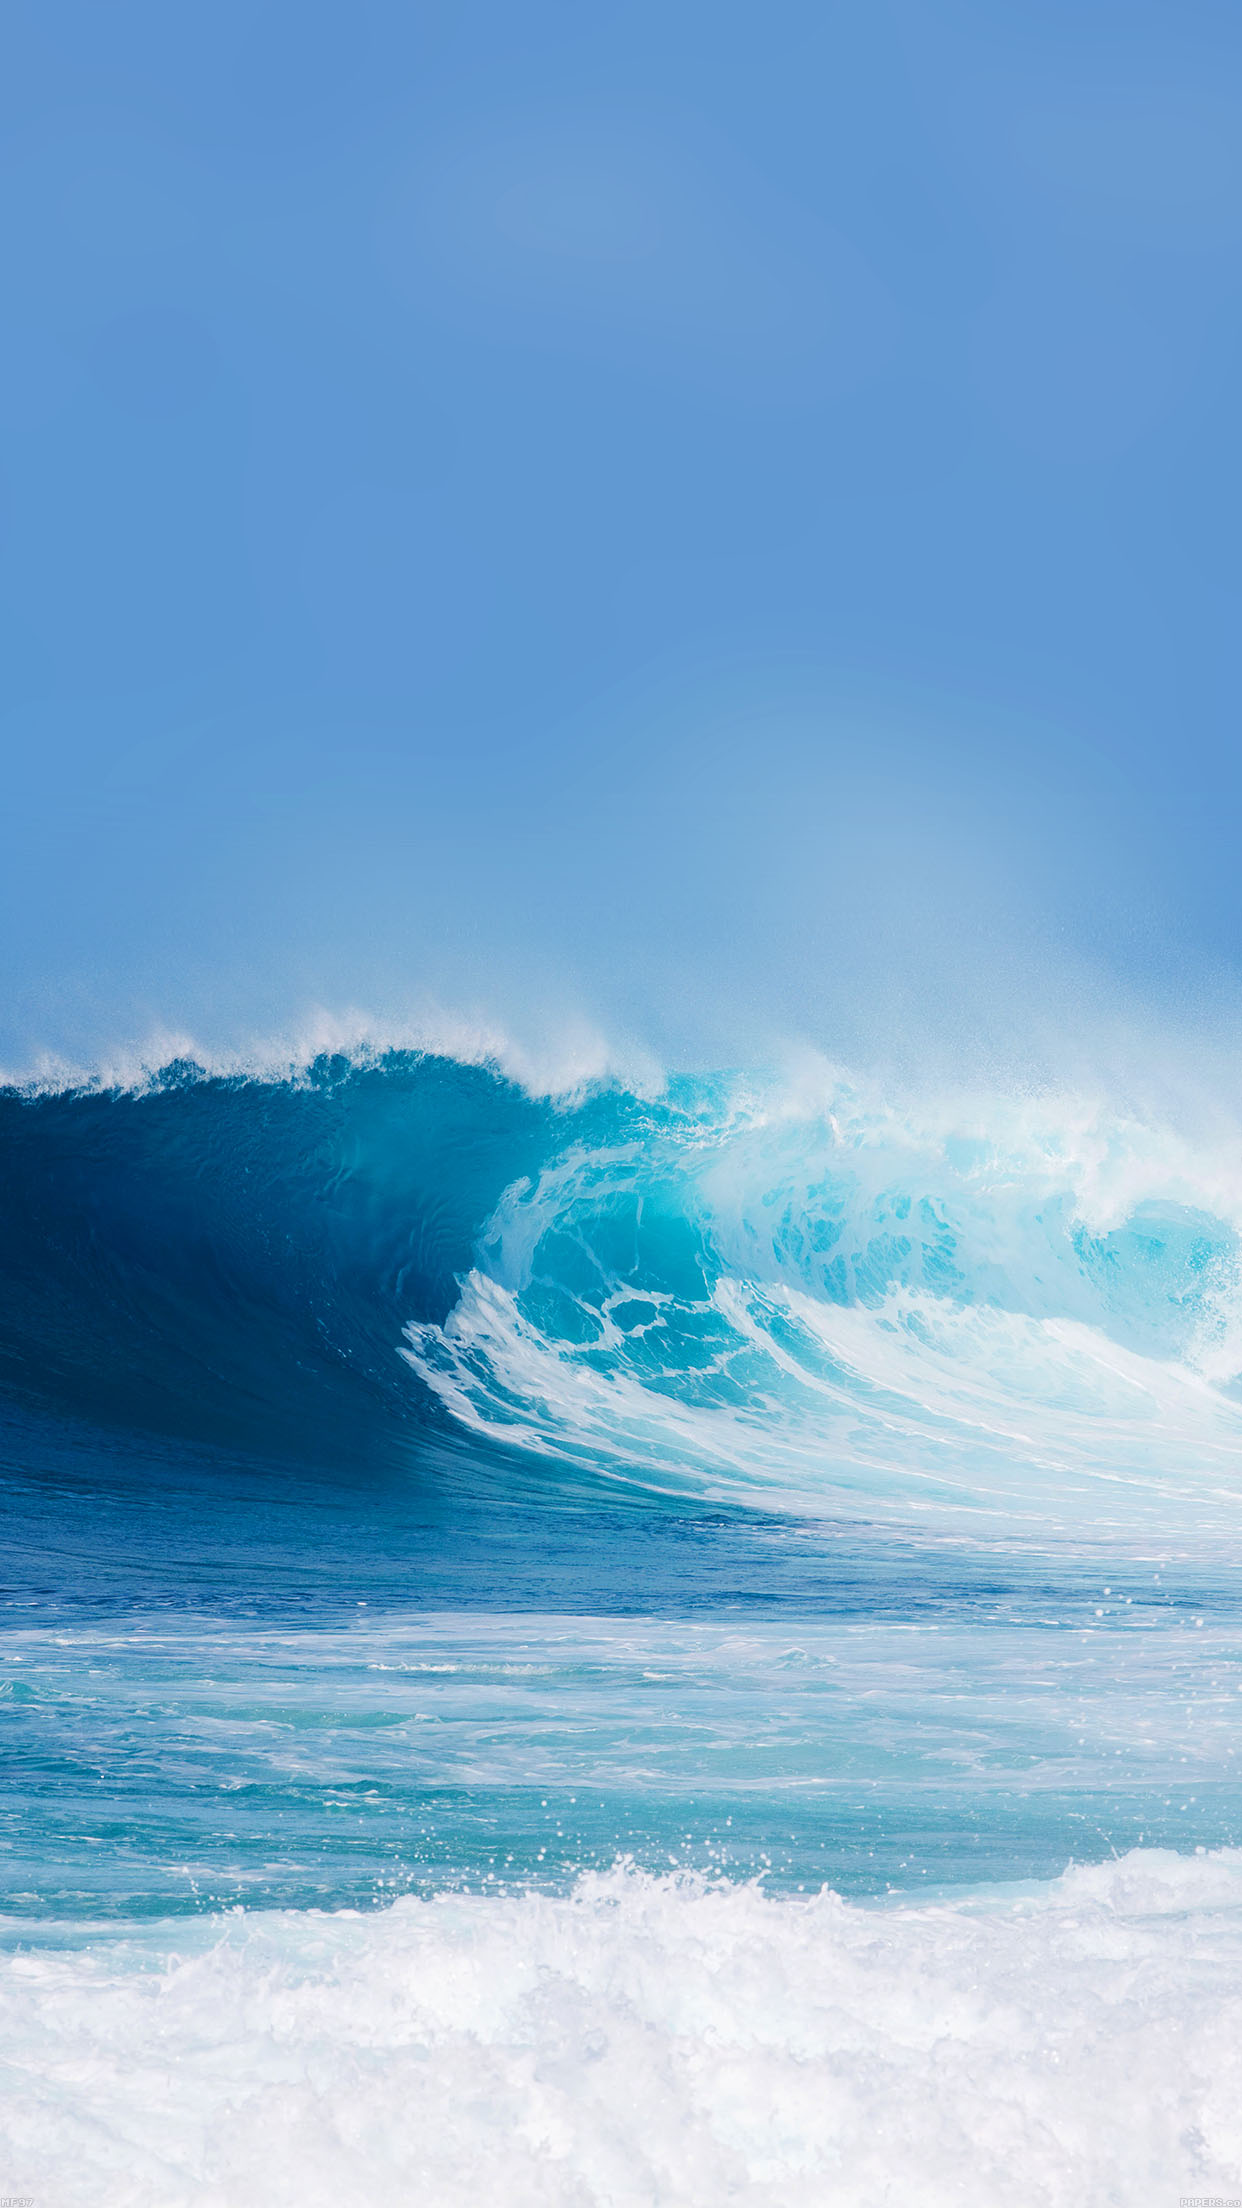 mf97-breaking-wave-ocean-sea-day-nature - Papers.co